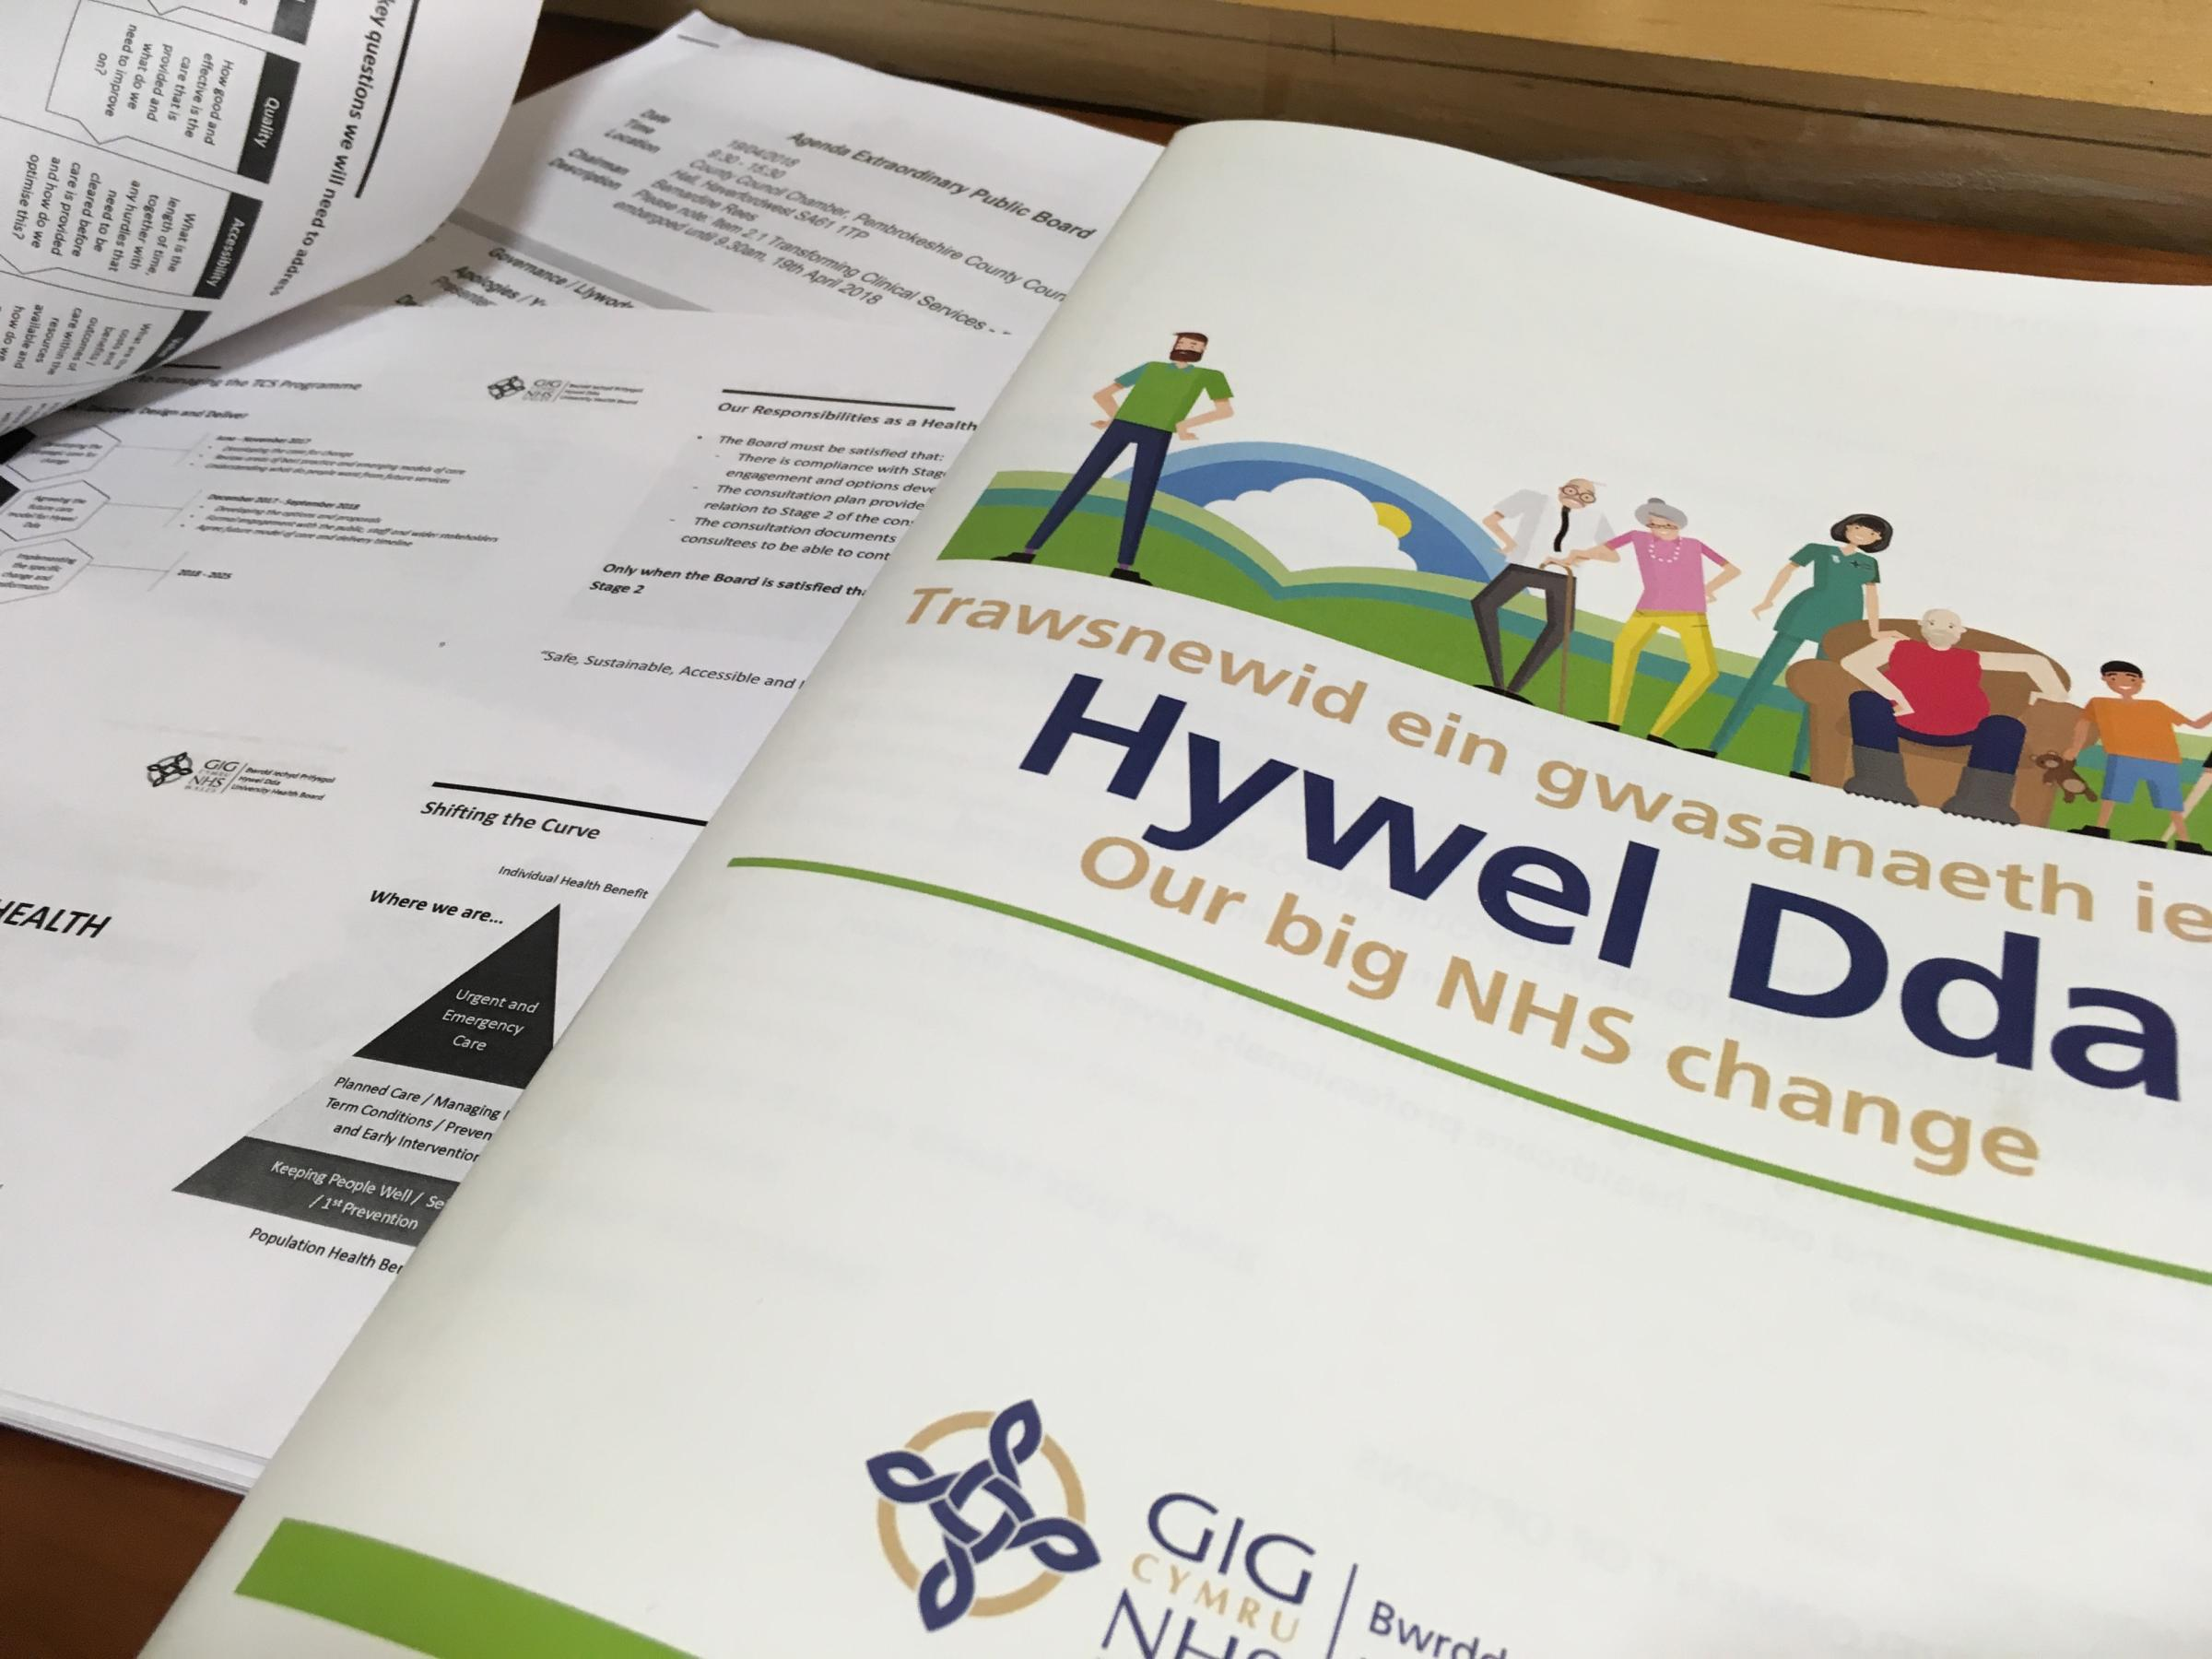 Hywel Dda University Health Board\'s proposals are now subject to public consultation.